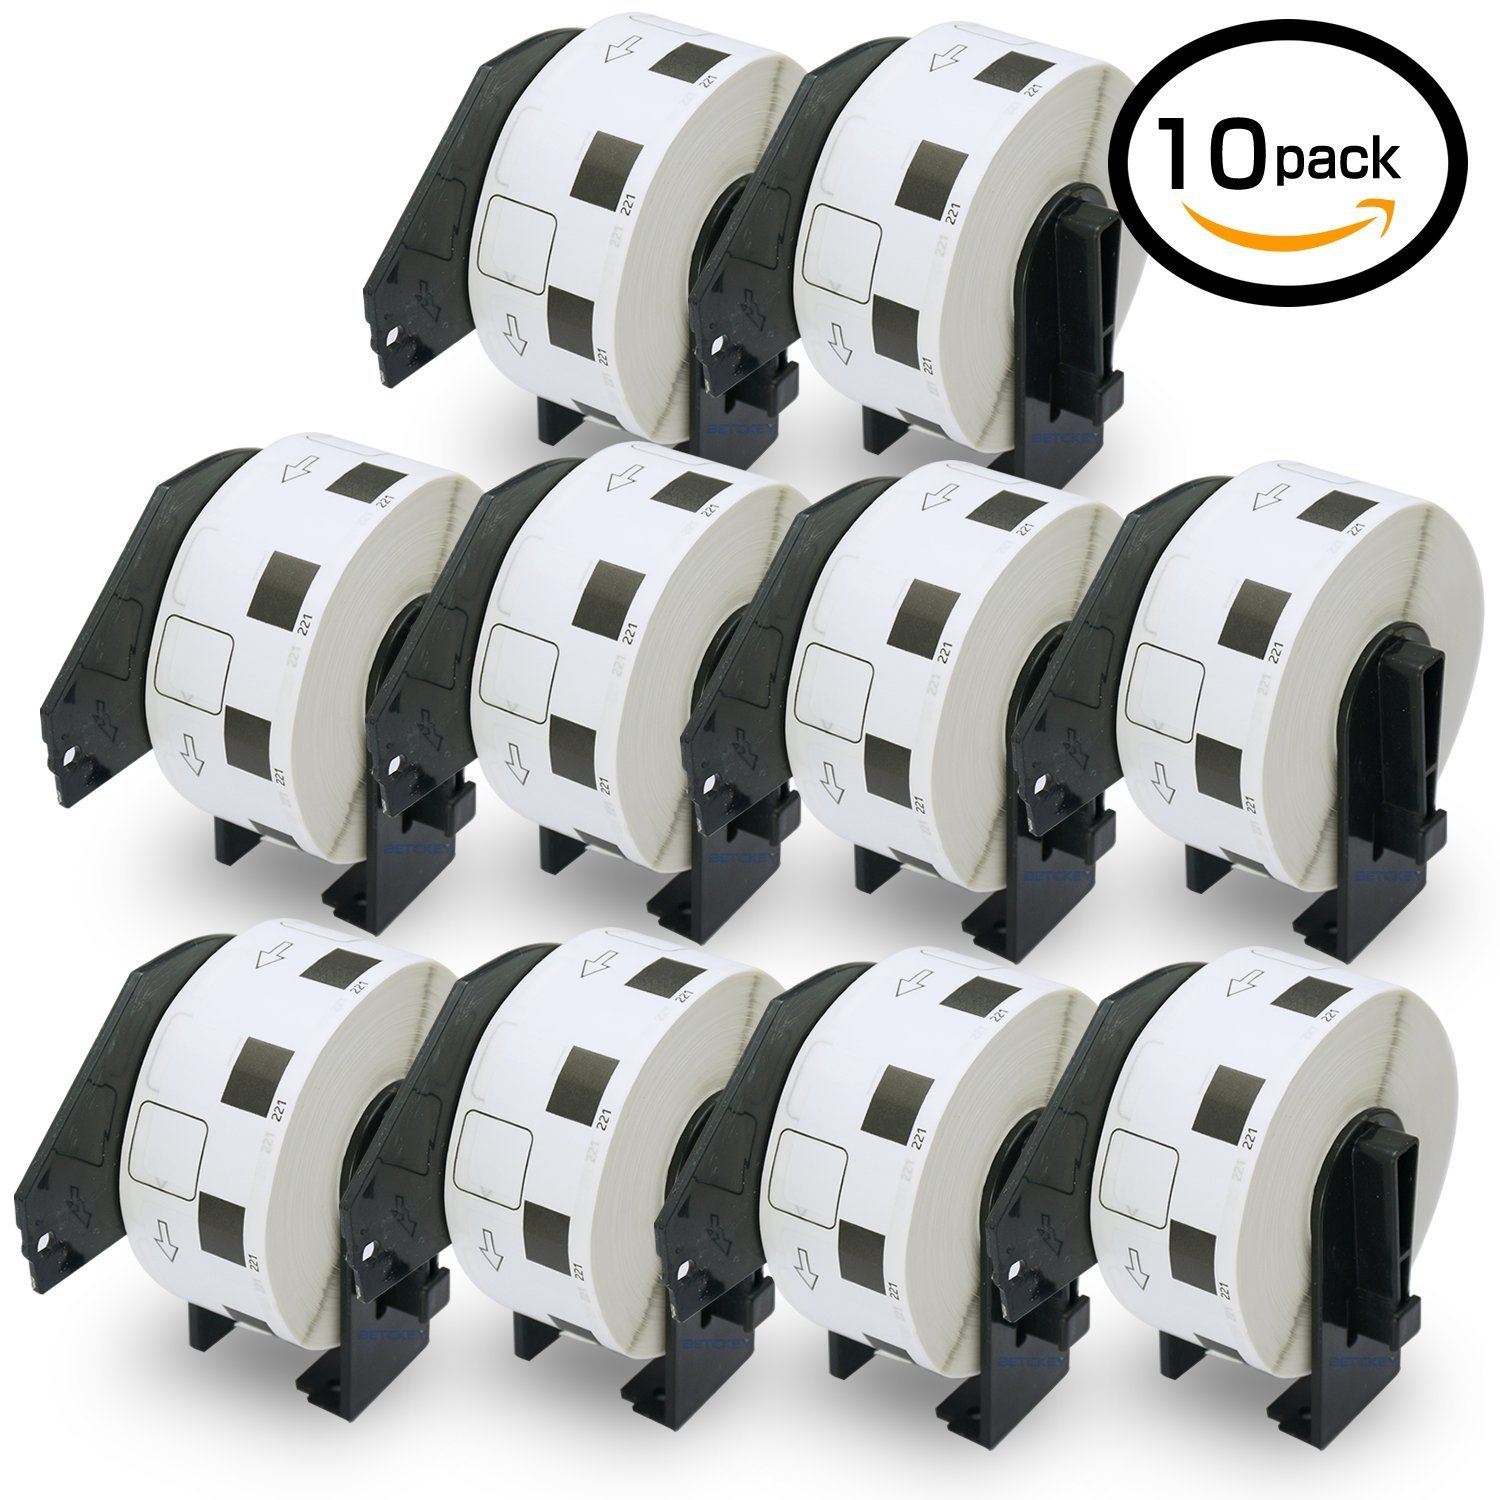 10 Rolls Brother-Compatible DK-11221 23mm x 23mm 10000 Square Paper Labels With Refillable Cartridge BETCKEY DK11221-Y10